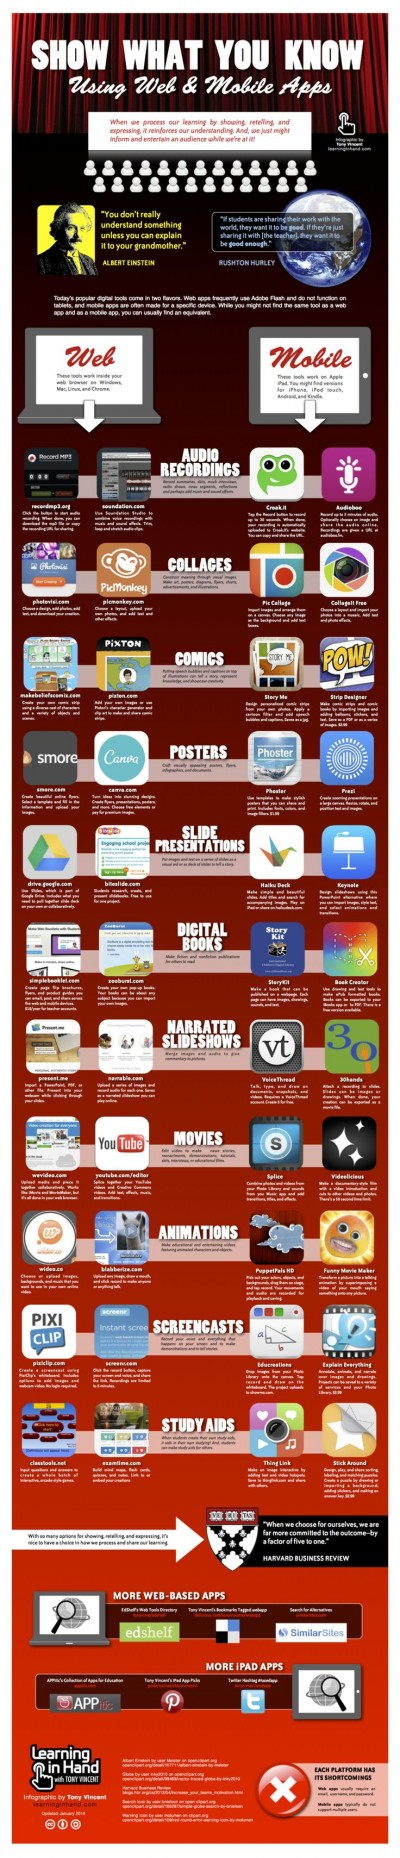 Tech It Up Tuesday: 50 Tools & Apps for Showcasing Student Knowledge